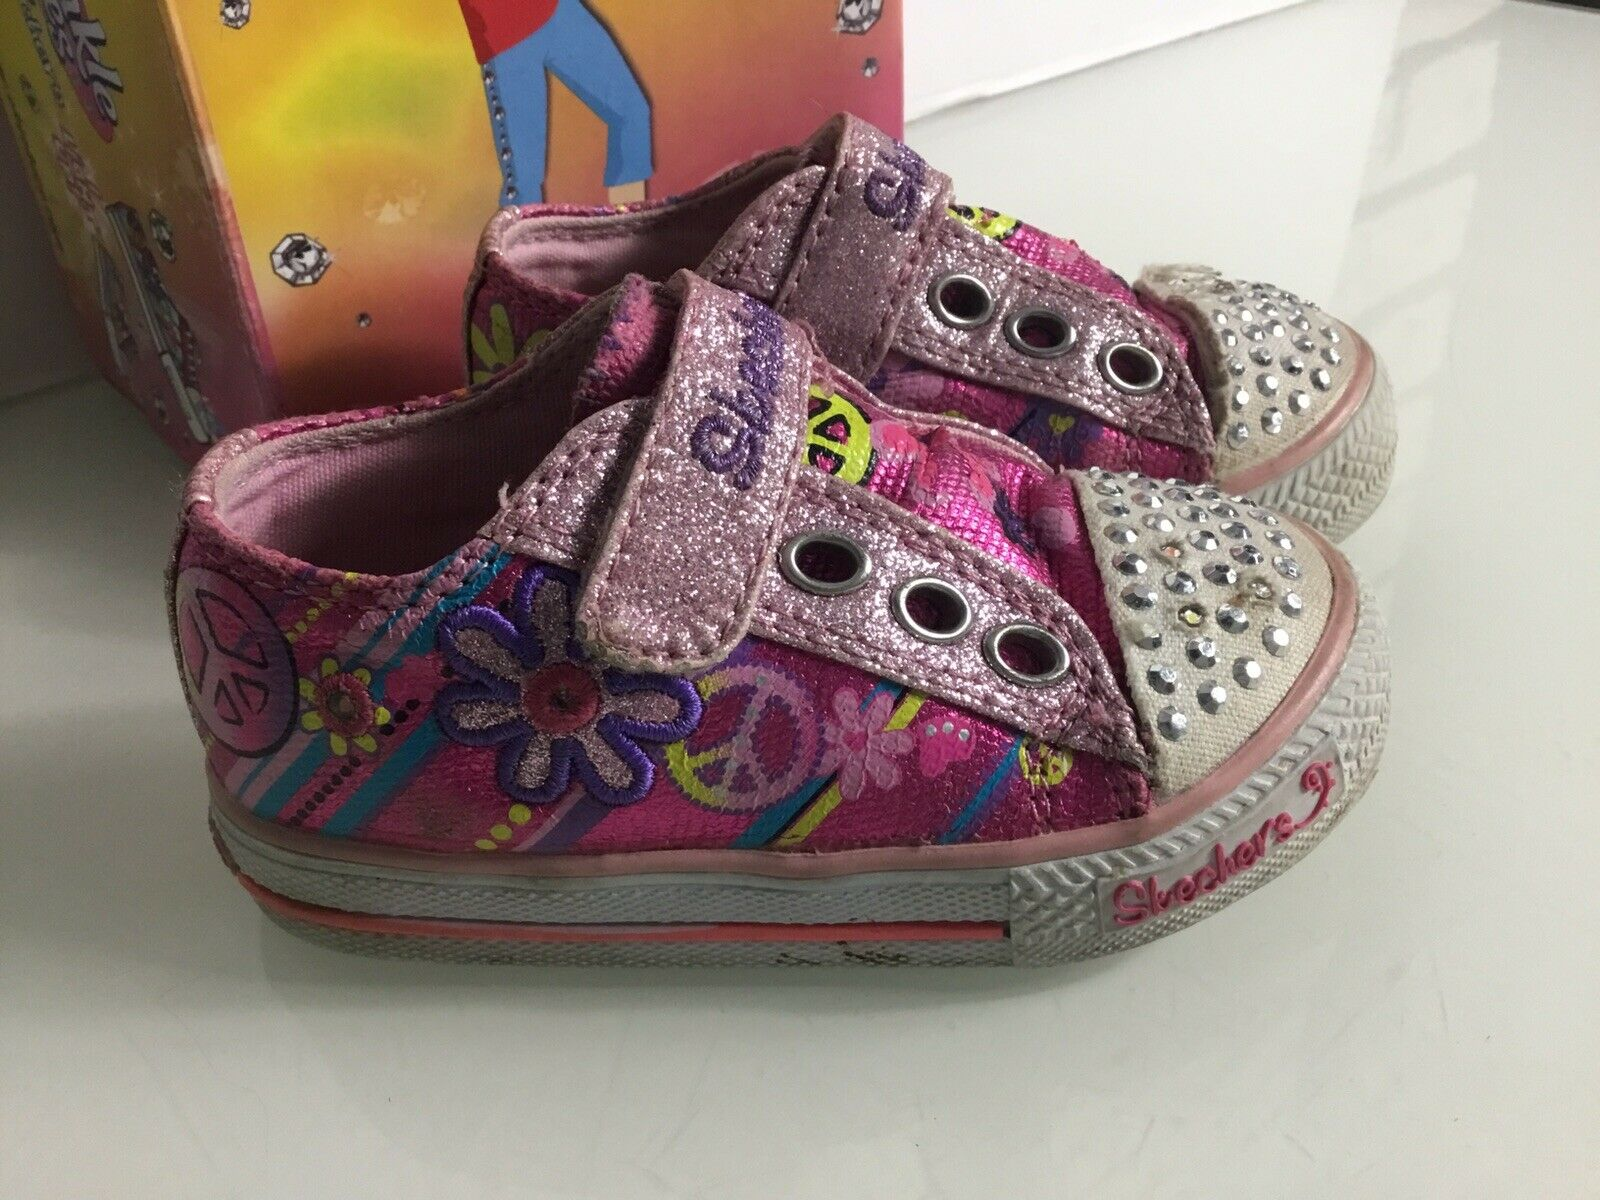 BNIB Skechers Lights light up girls trainers size UK 13.5 EU 33